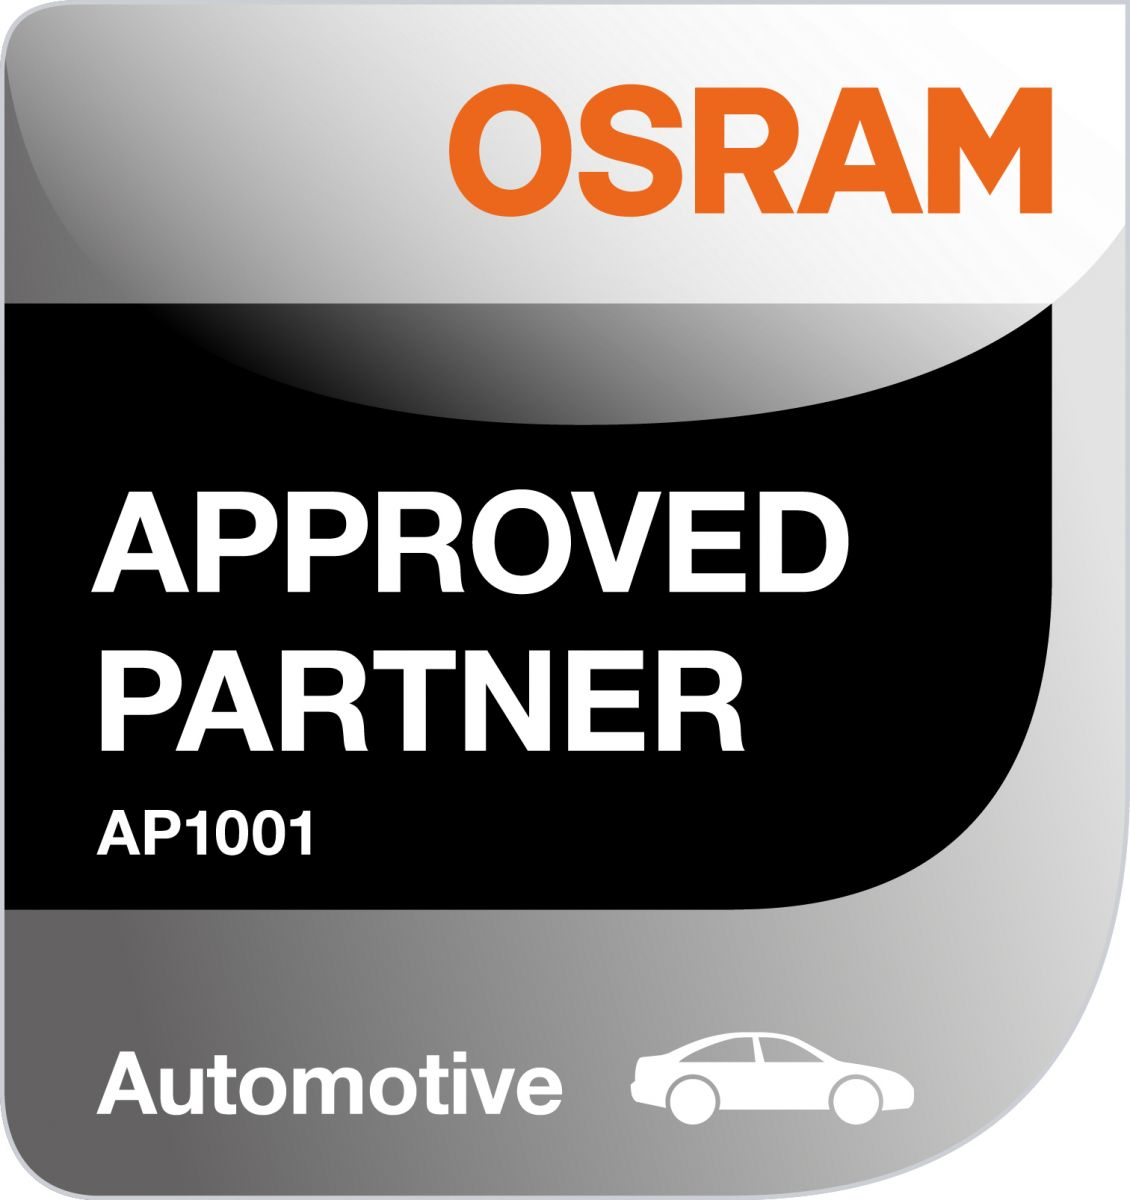 http://www.nightbreakerunlimited.co.uk/assets/uploaded/images/OSRAM_ApprovedPartner_AP1001_AM_Black_RGB_20160724.jpg